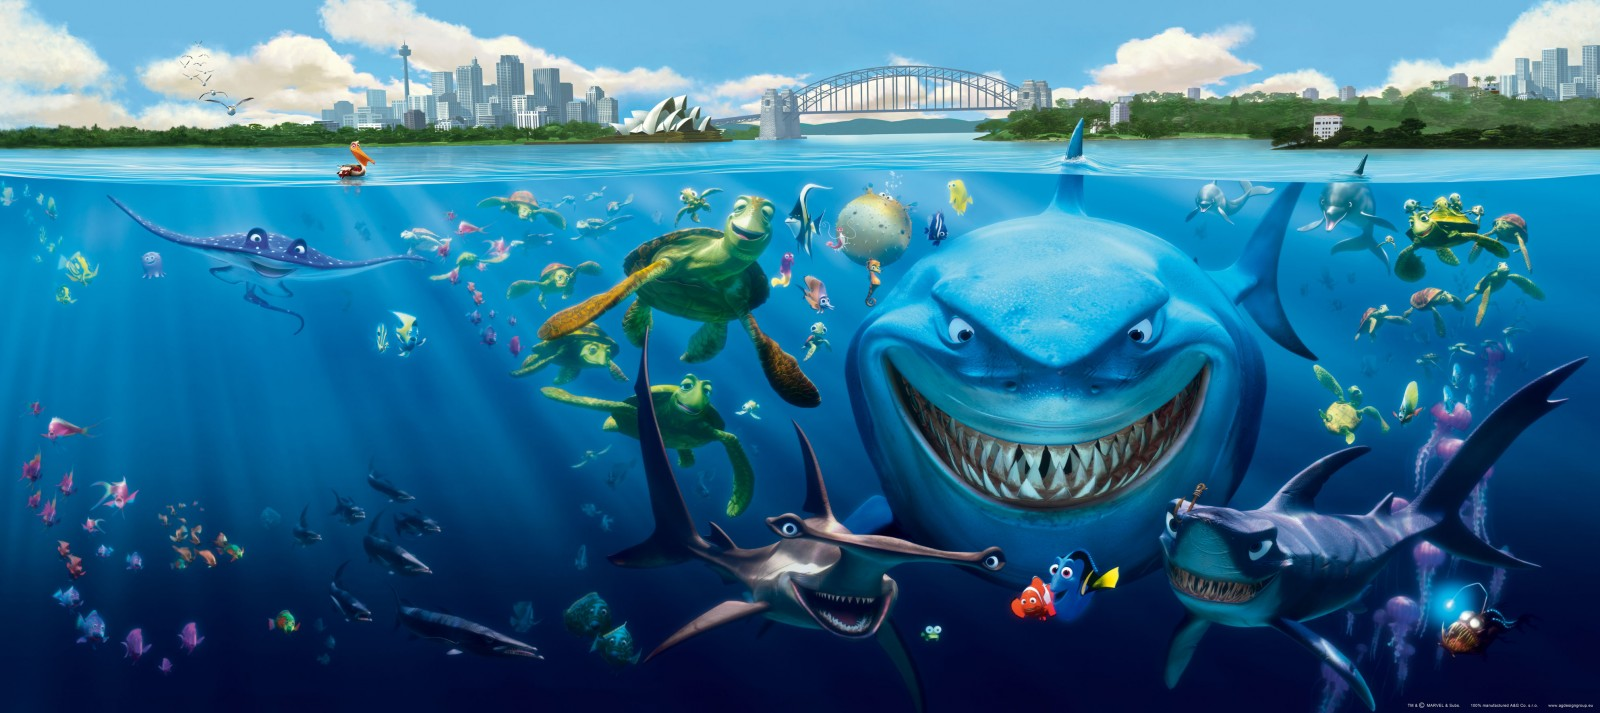 Wall mural wallpaper finding nemo 3 sharks bruce anchor for Finding nemo fish names